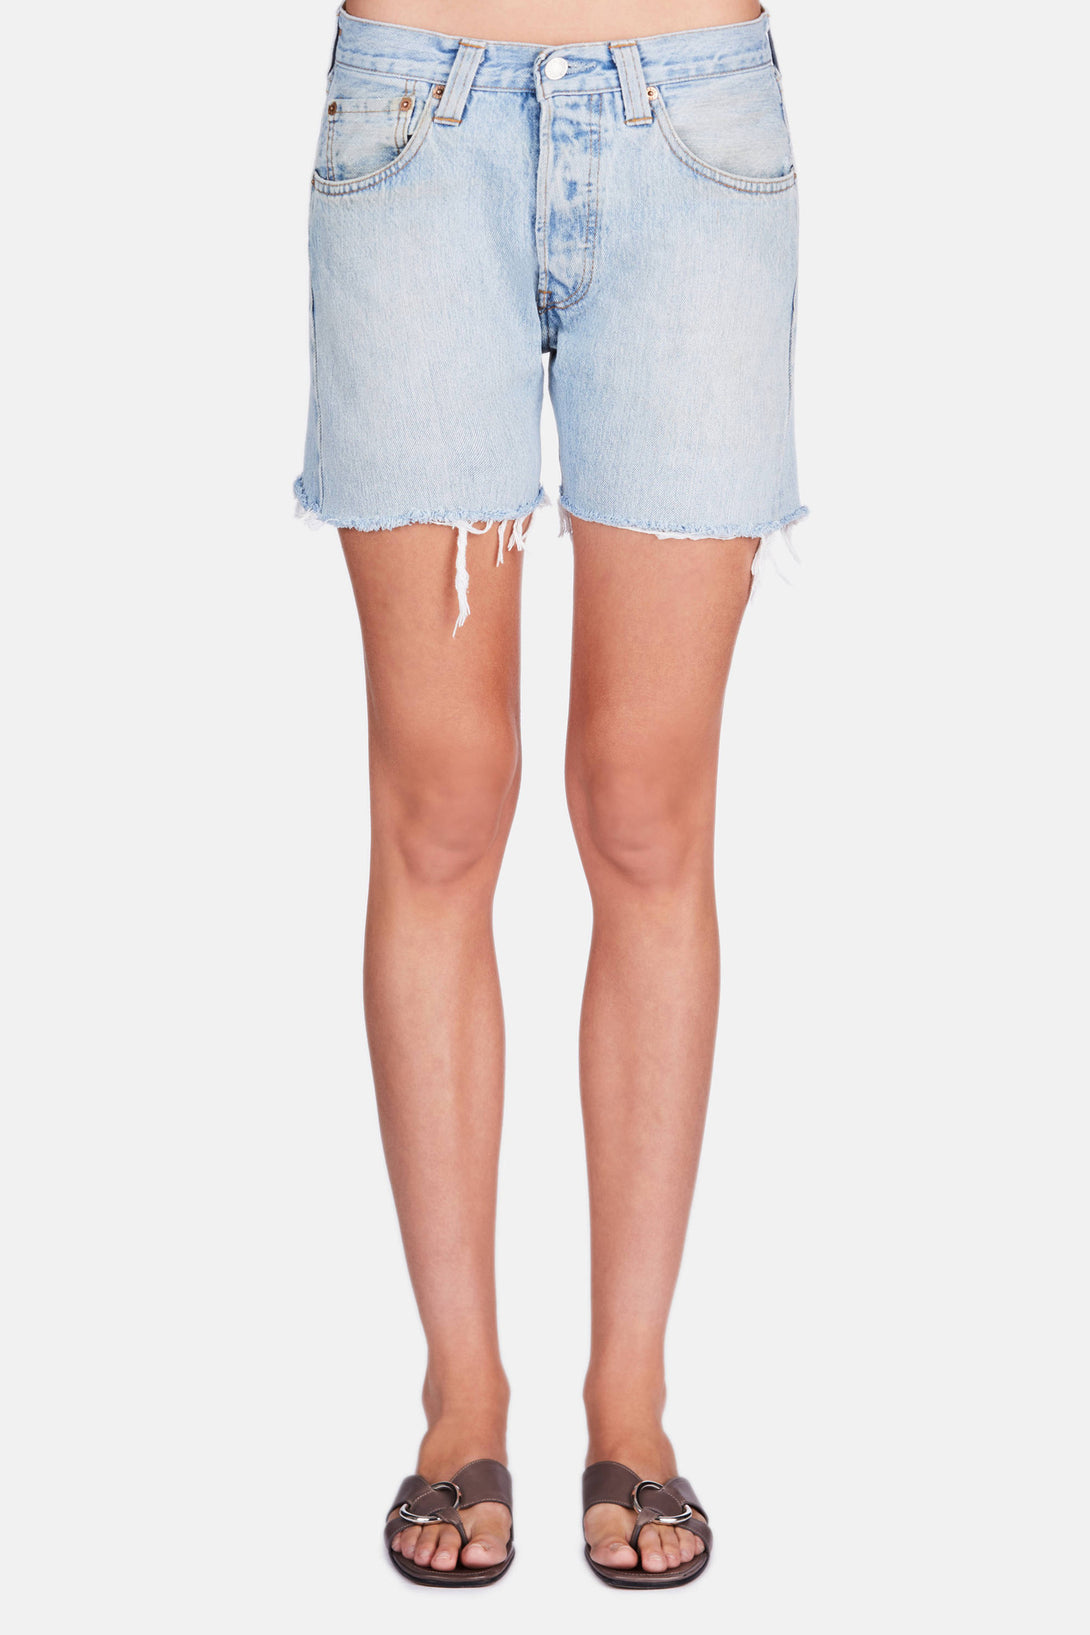 Vintage Cutoff Shorts